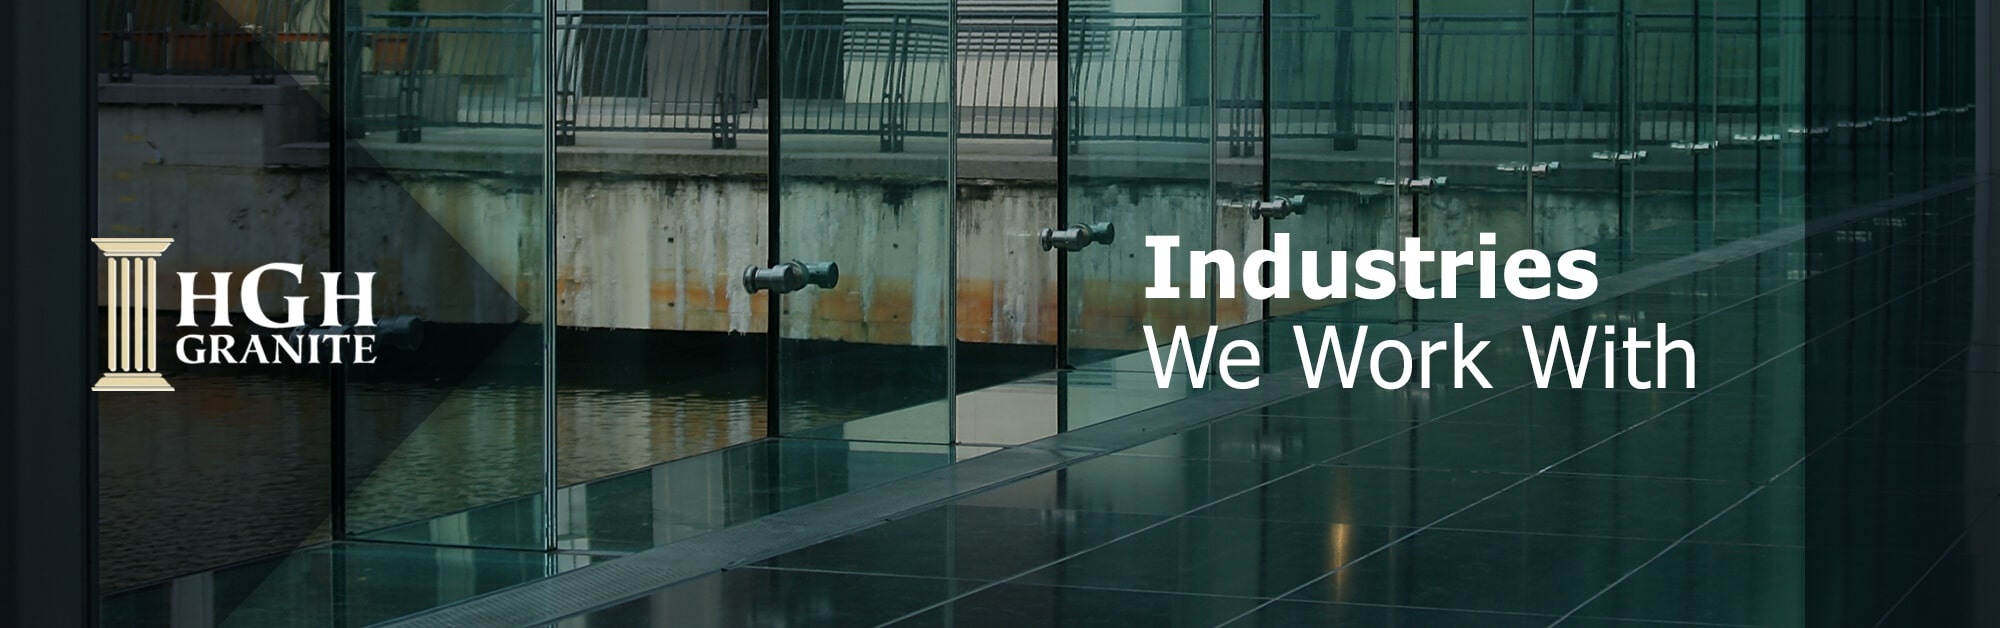 Industries We Work With Banner